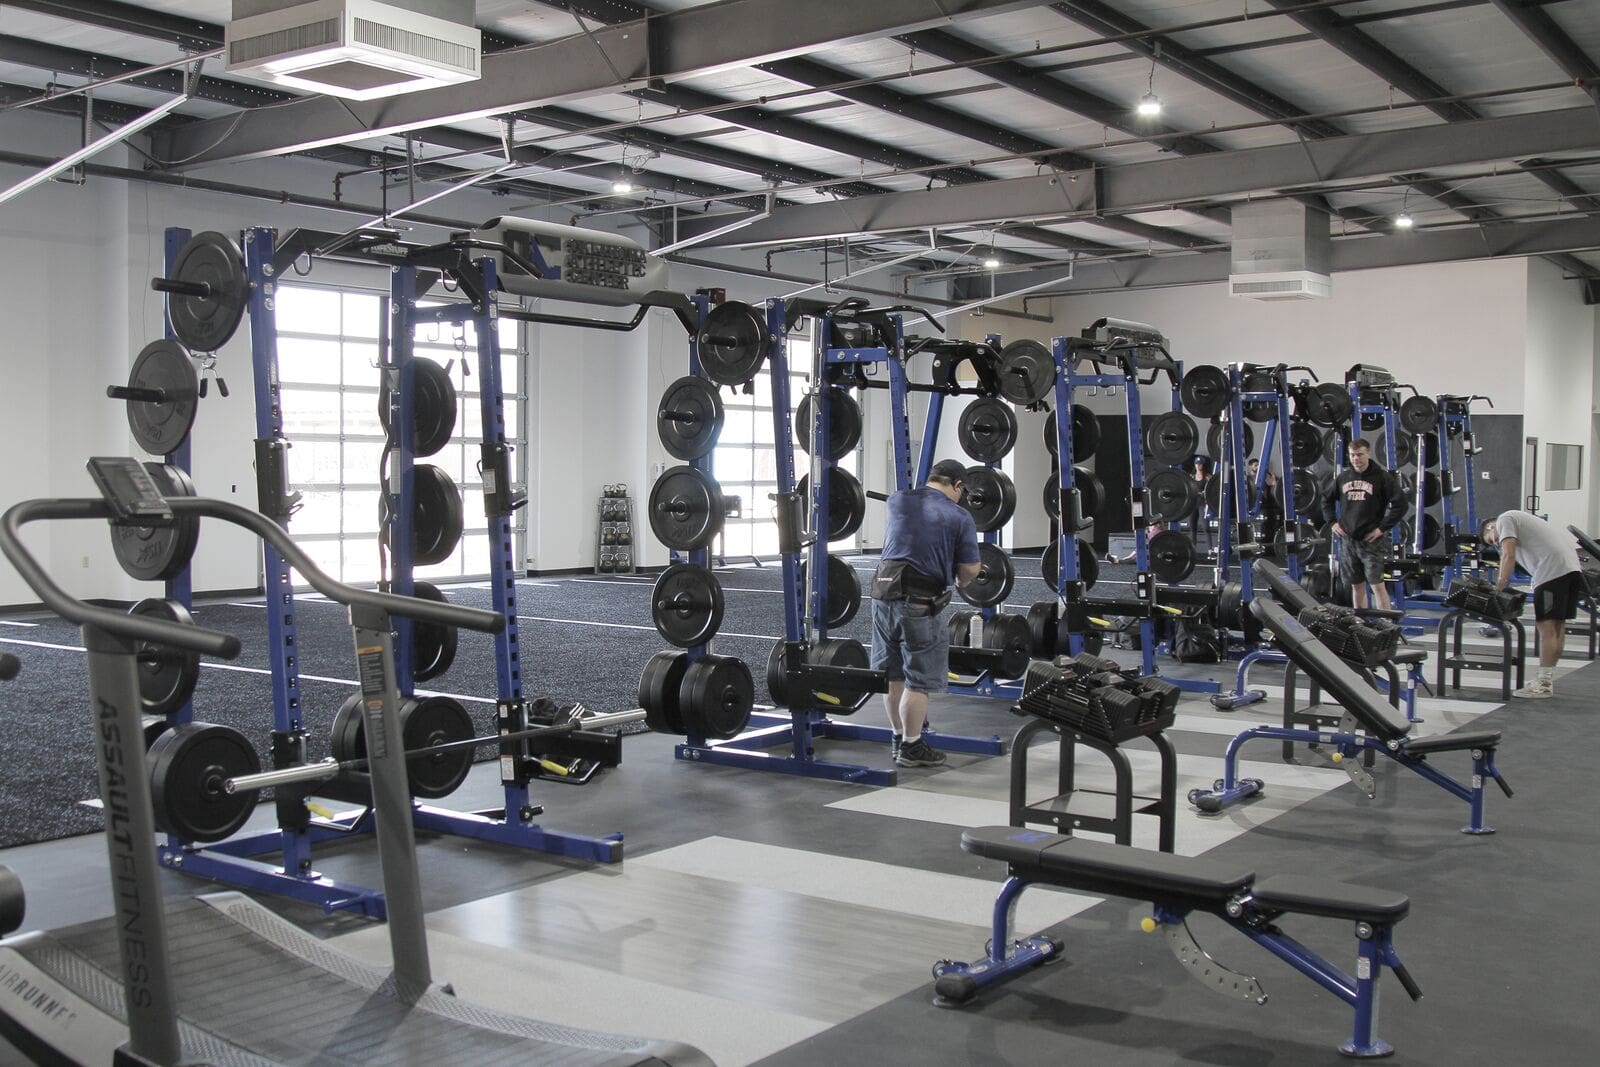 Oklahoma Athletic Center - TuffStuff Half Rack Installation